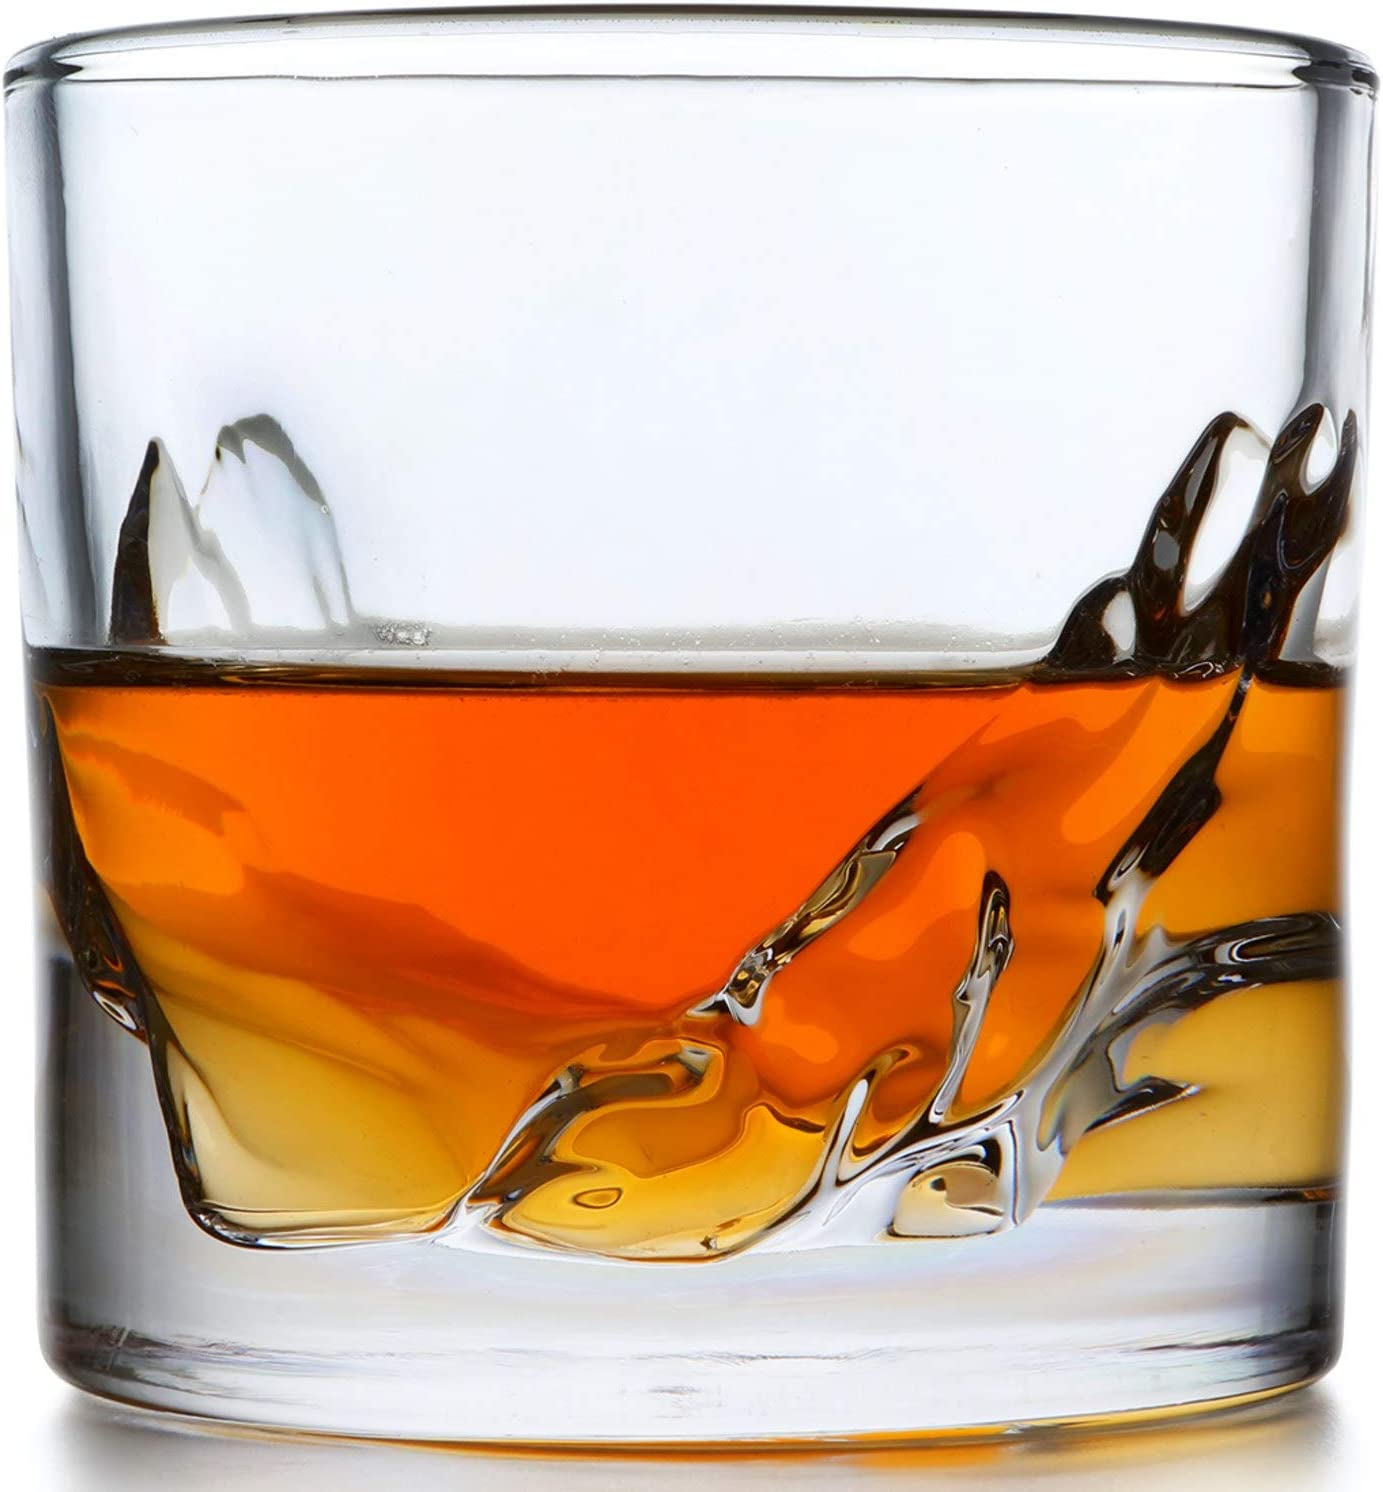 LIITON Grand Canyon Whiskey Glass Set of 4: Heavy Whisky Tumbler Best as Old Fashioned Glasses